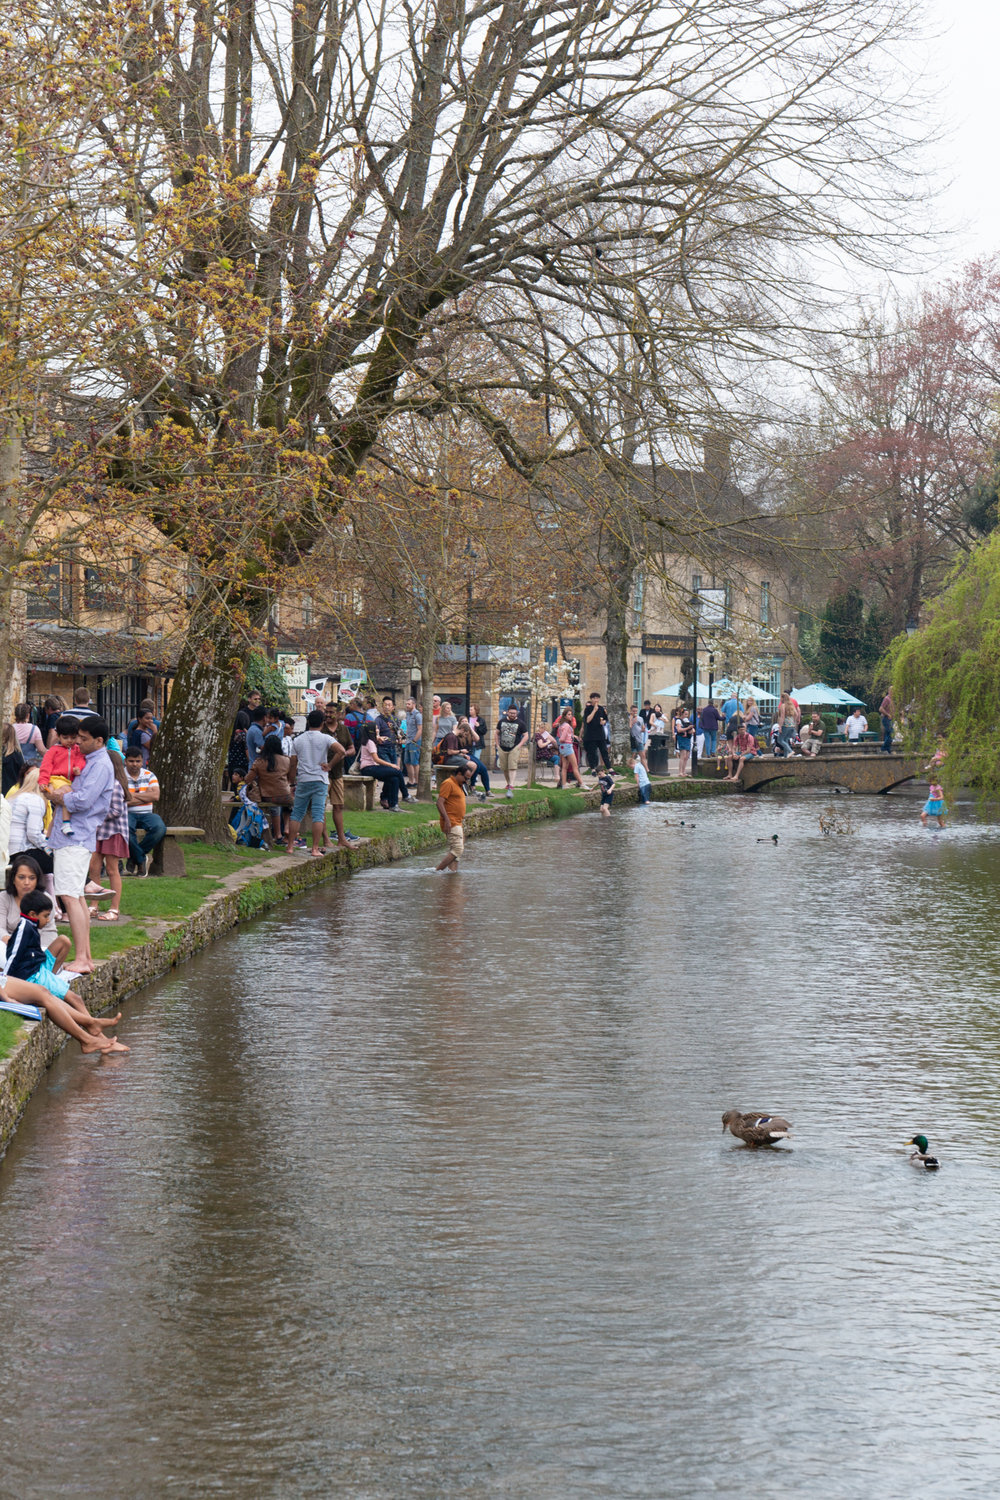 Bourton-on-the-Water, England's Cotswolds | Ciao Fabello